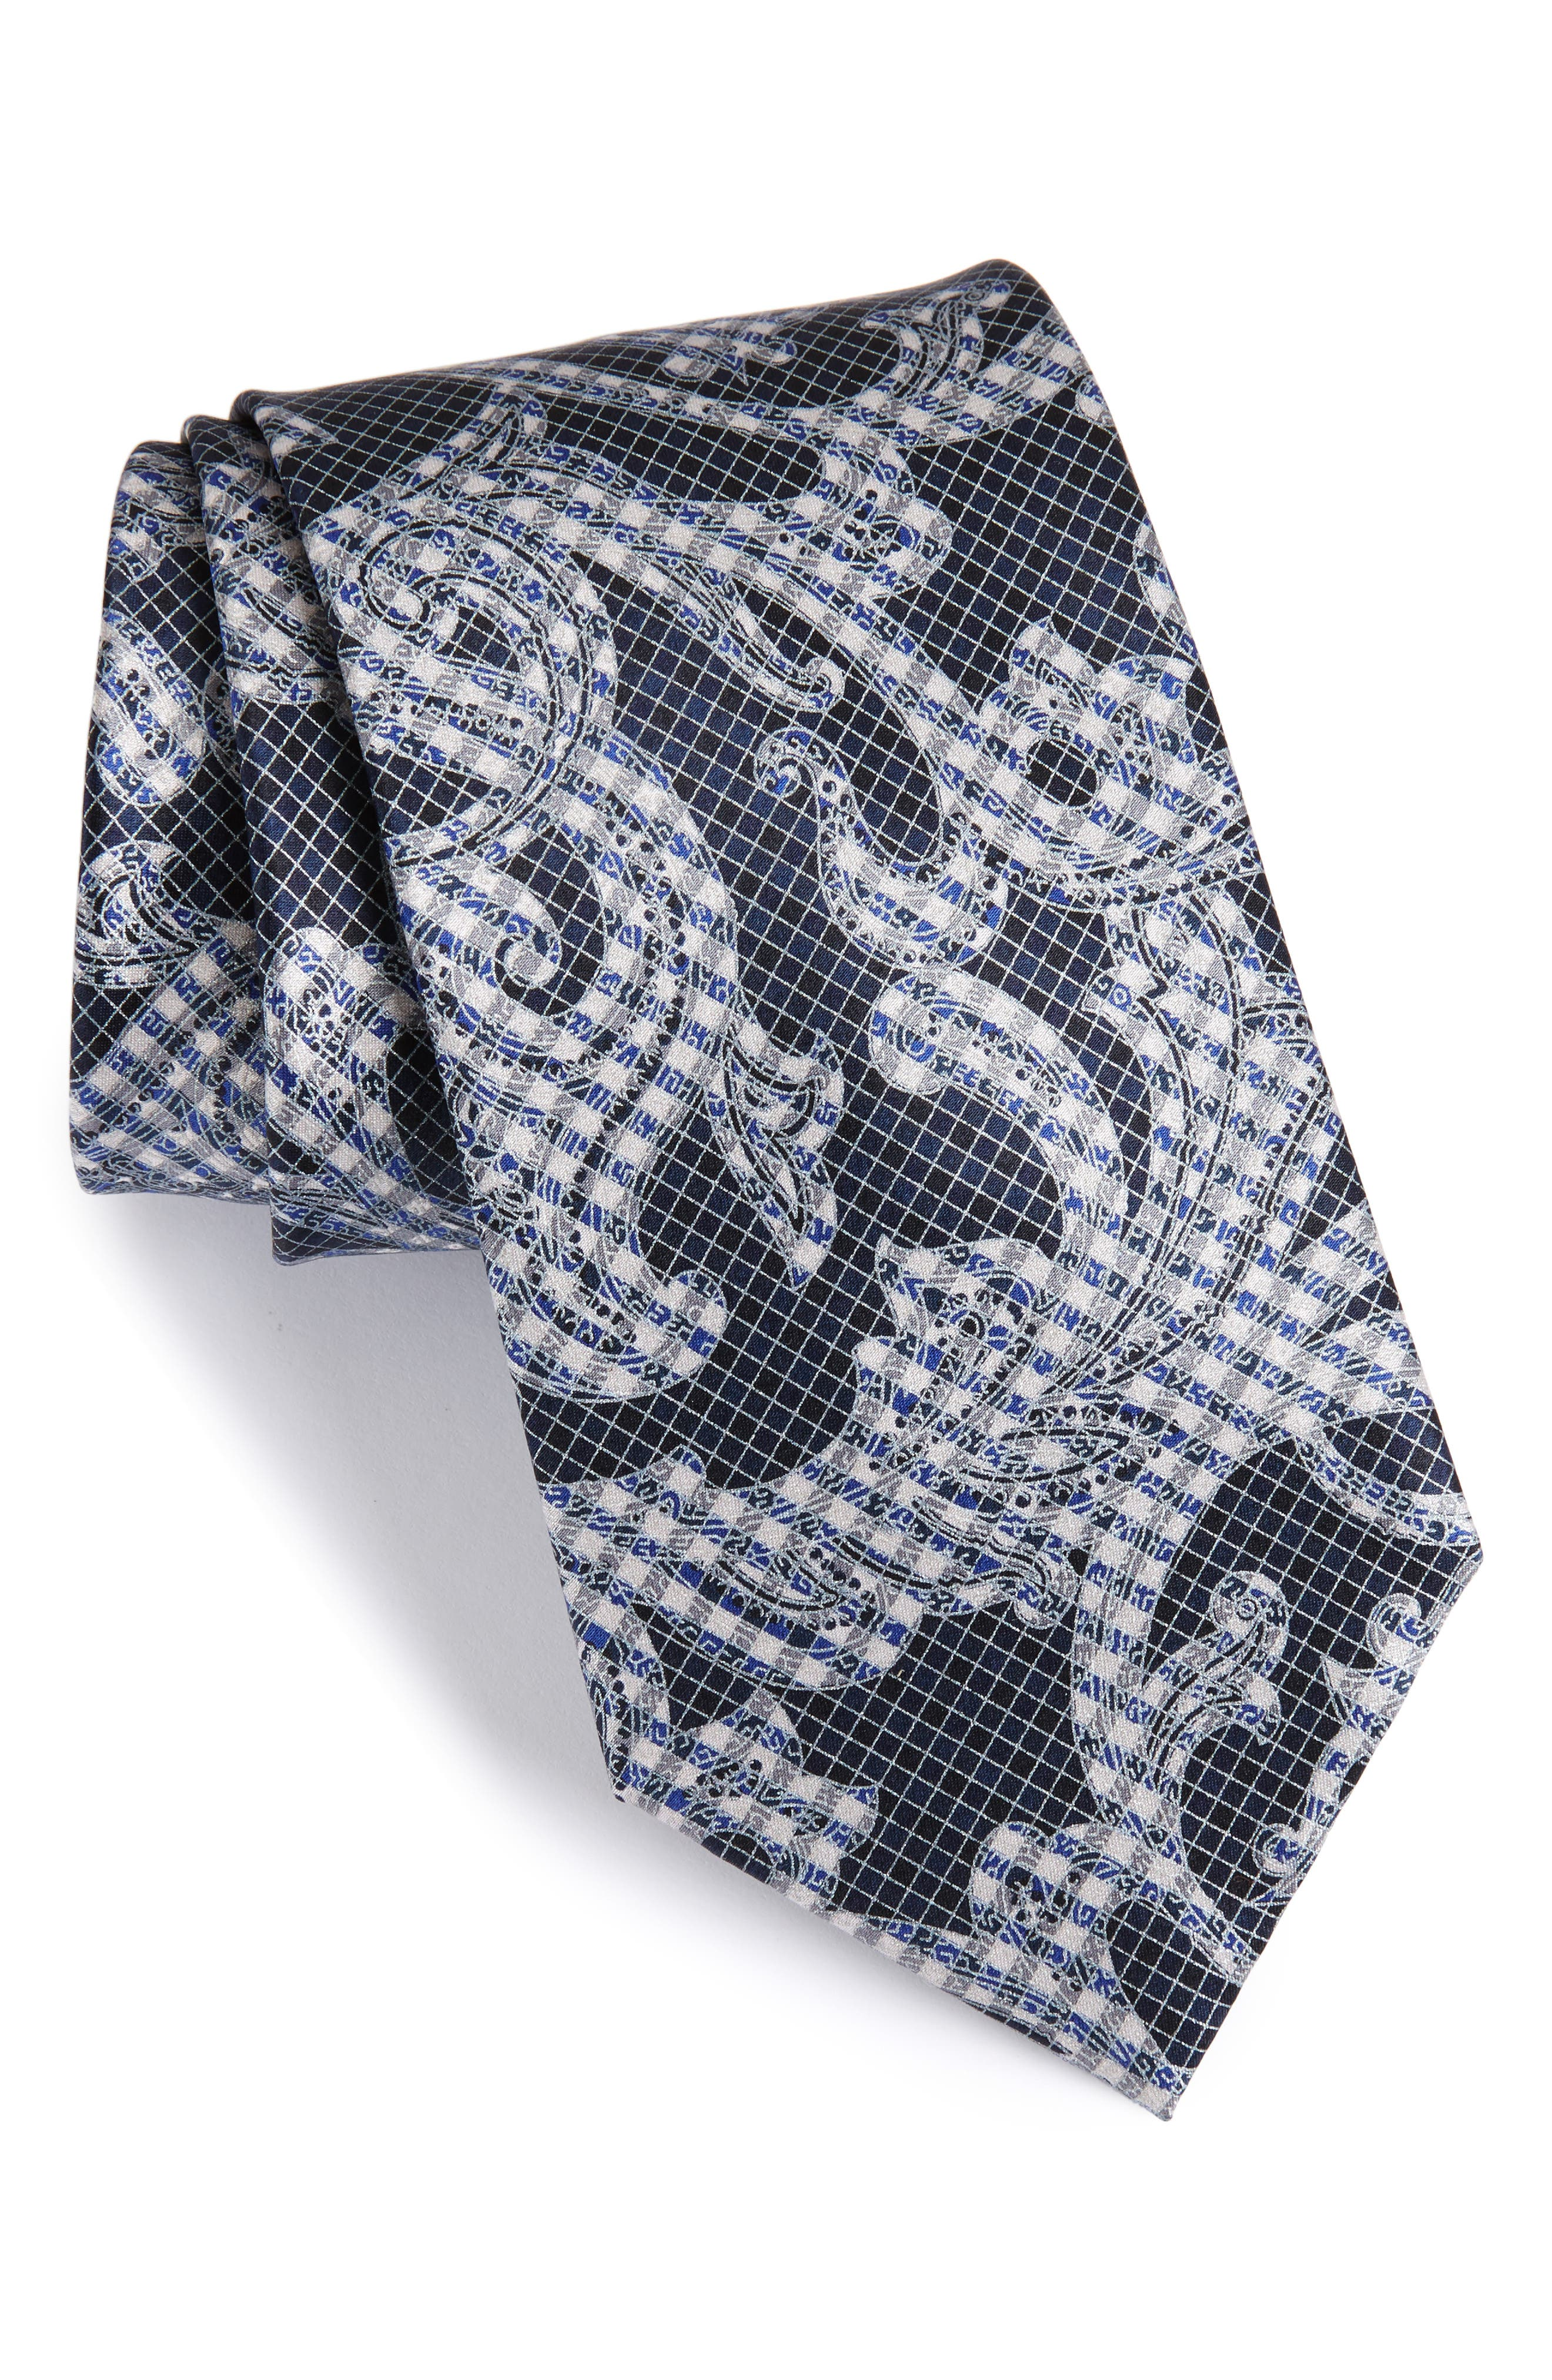 Paisley Silk Tie,                             Main thumbnail 1, color,                             425